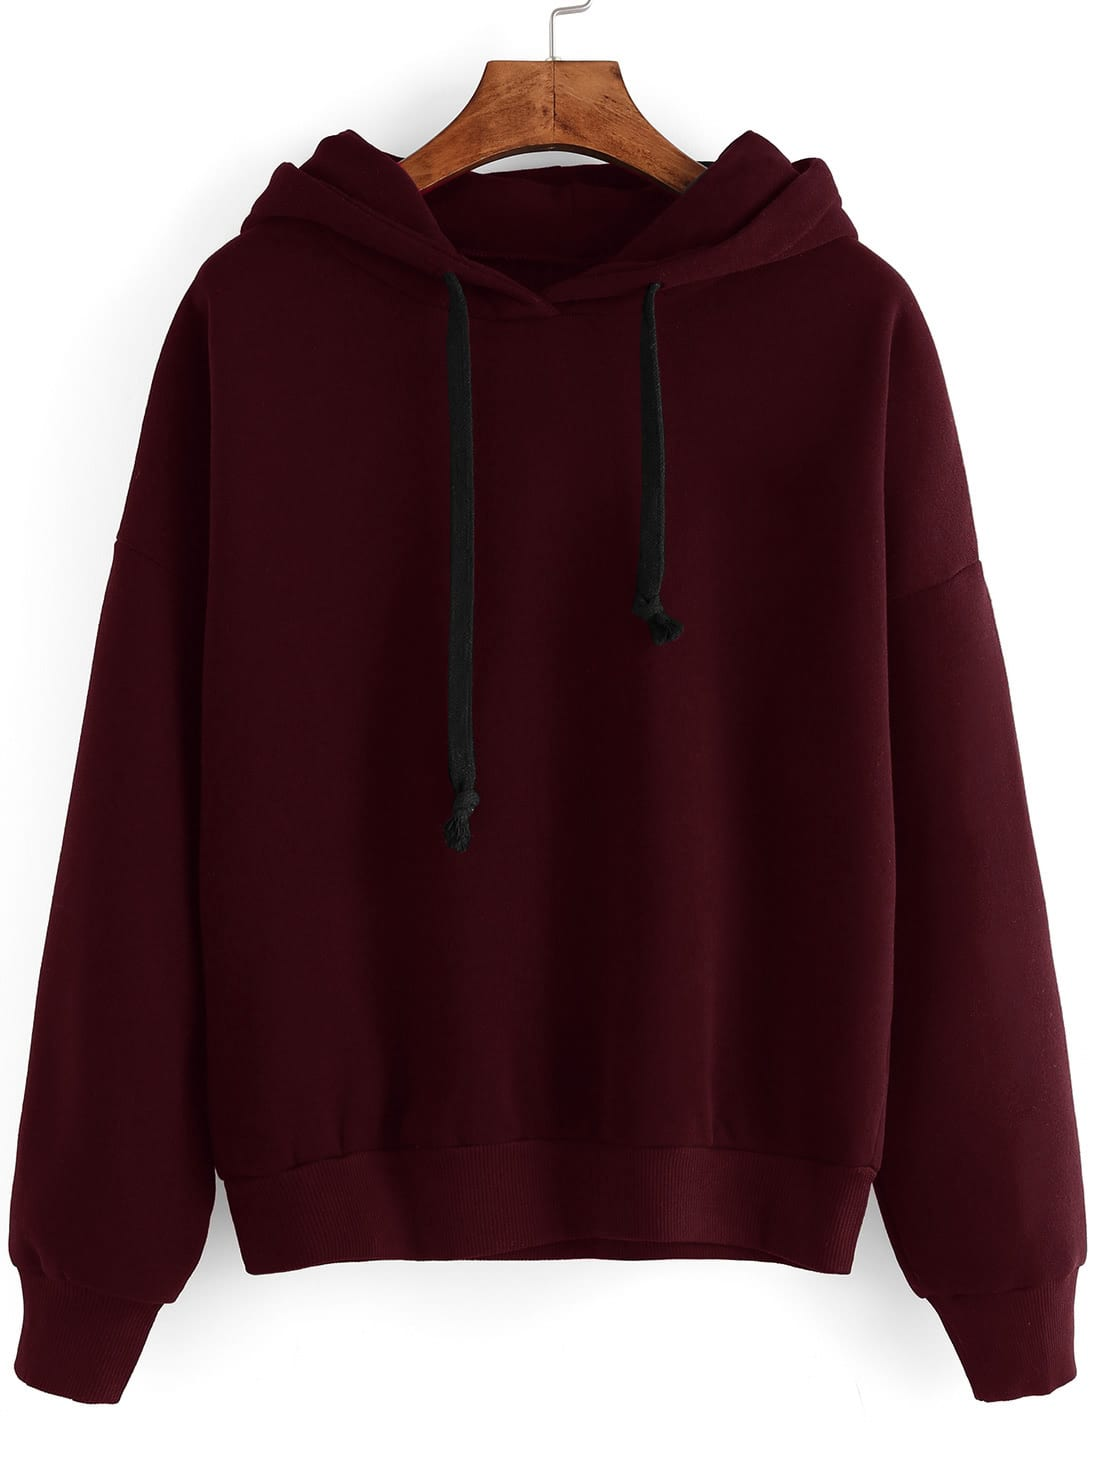 Contrast Drawstring Drop Shoulder Hooded Sweatshirt drop shoulder ripped hooded crop sweatshirt